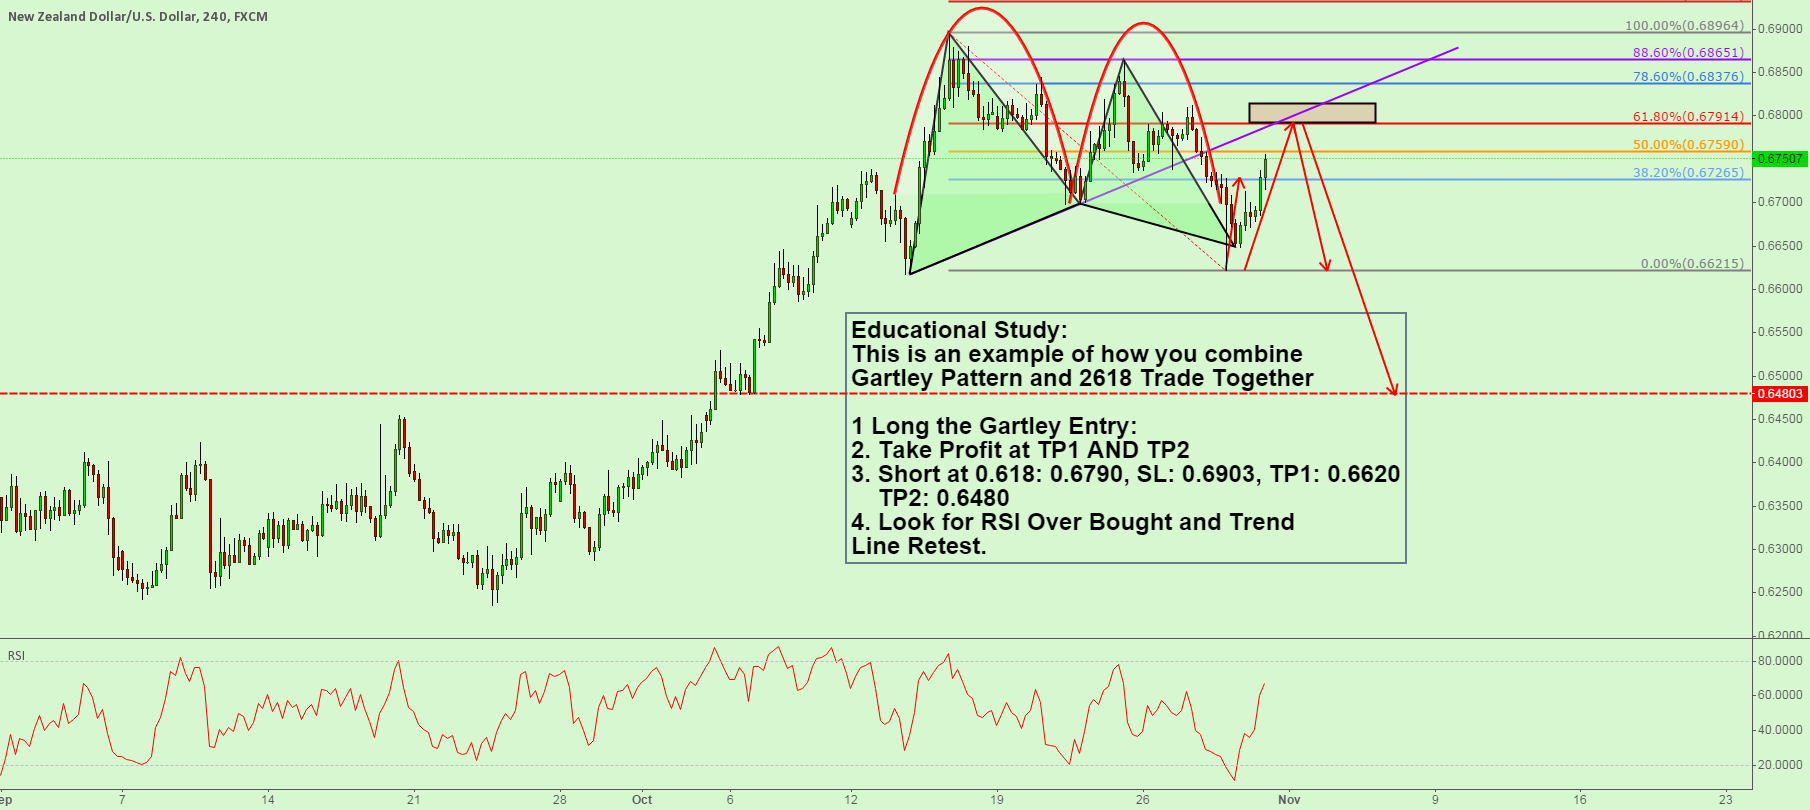 Educational Study: Gartley + 2618 Combo Trade!